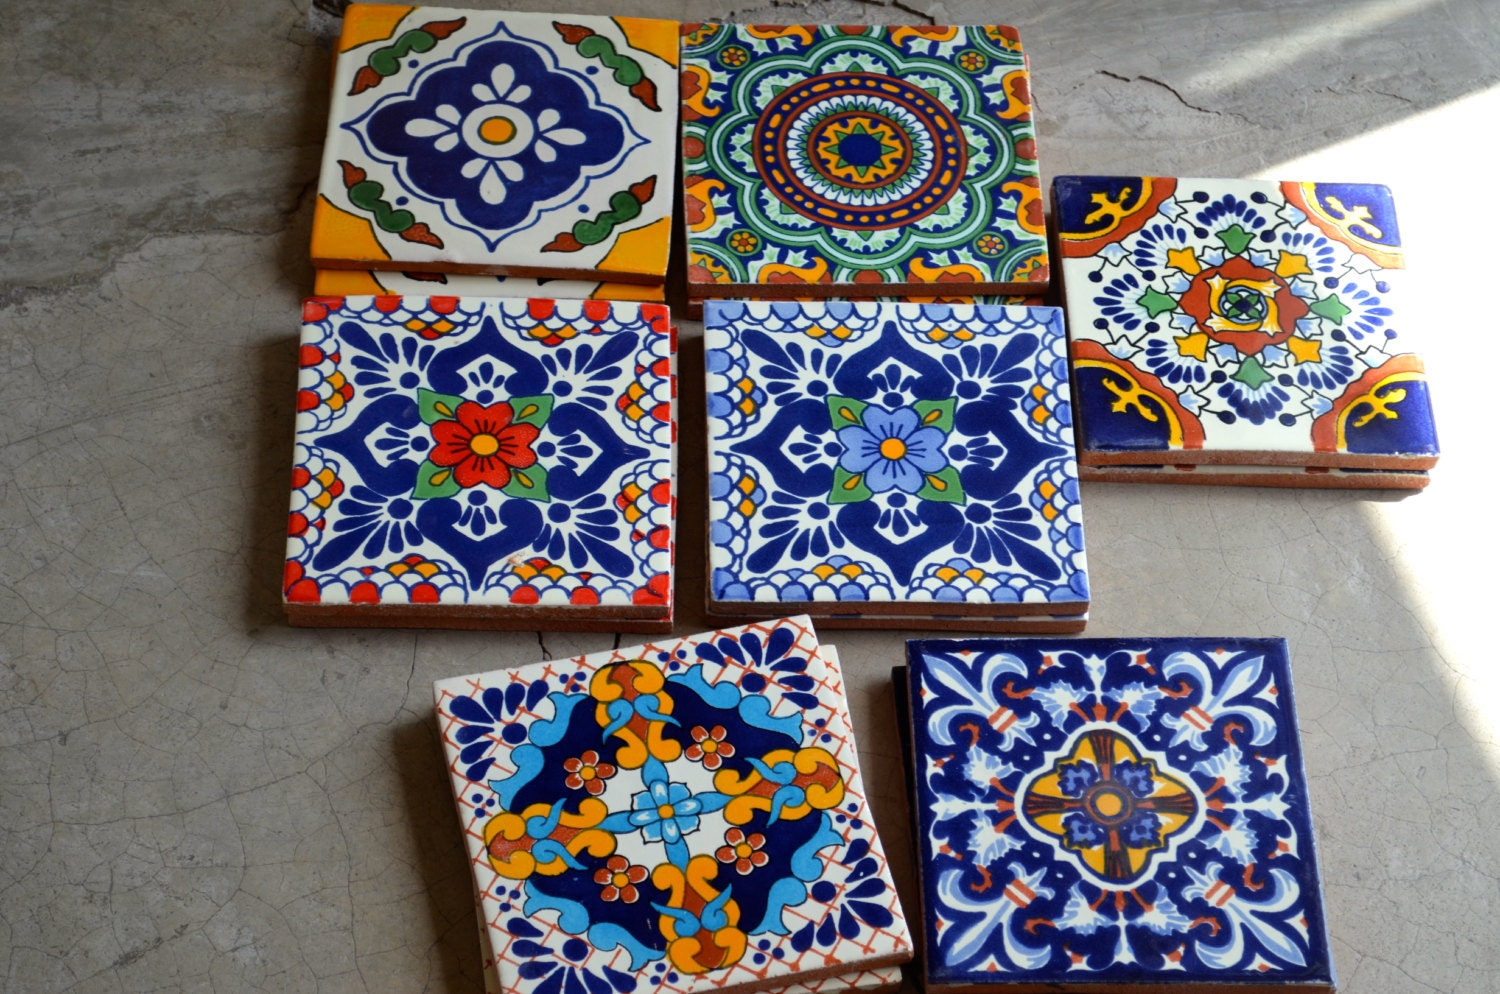 40 mexican talavera tiles hand made hand painted 6 x 6 from mexicantiles on etsy studio. Black Bedroom Furniture Sets. Home Design Ideas